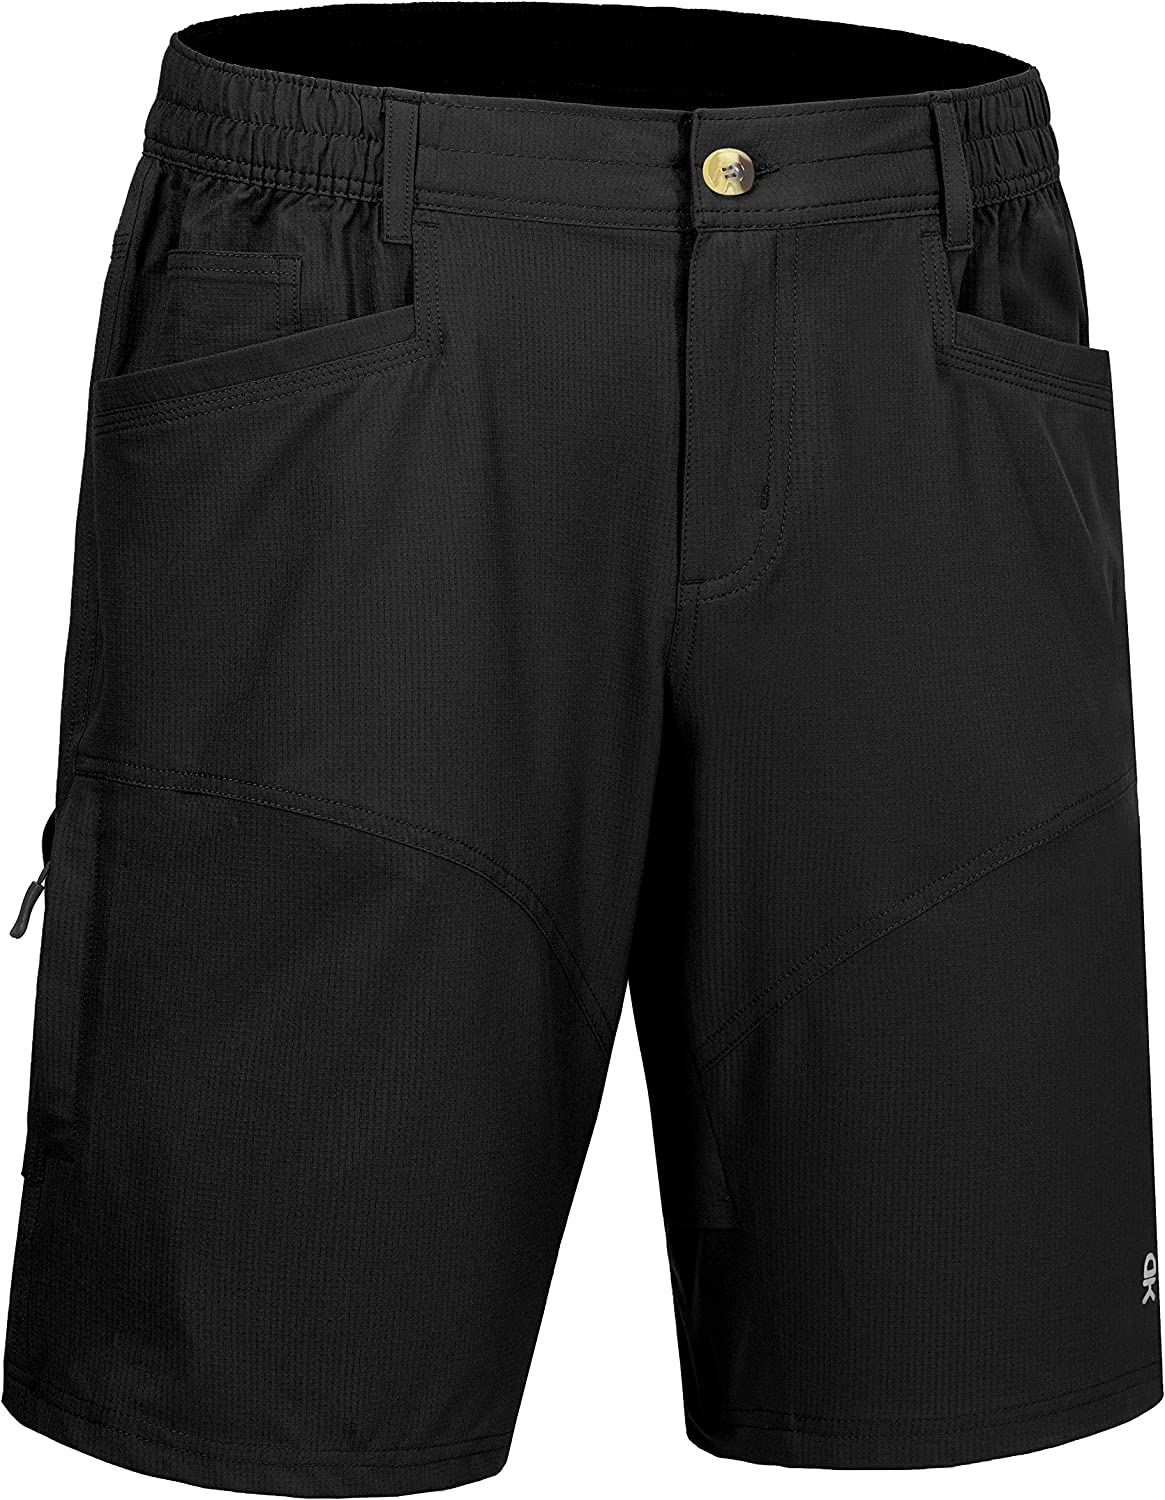 Little Donkey Andy Inexpensive Men's Quick OFFicial site Dry Walking Wor for Hiking Shorts